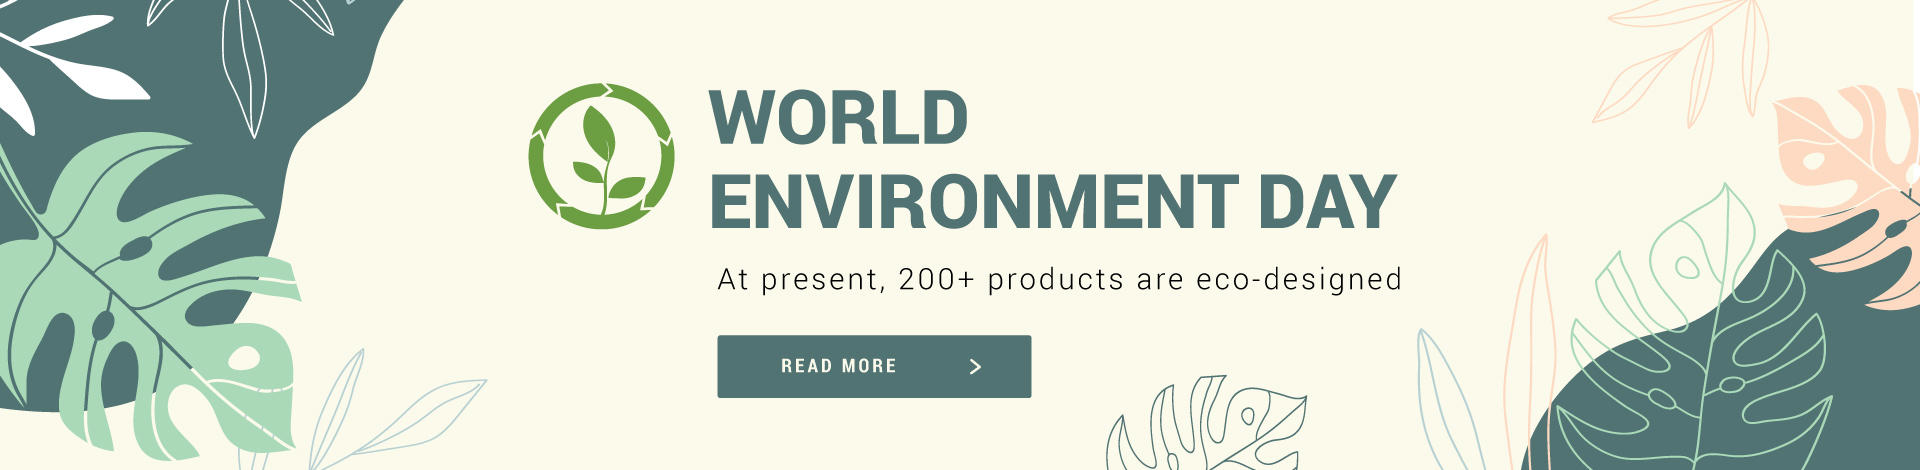 Eco design Products, decathlon eco design environmental products